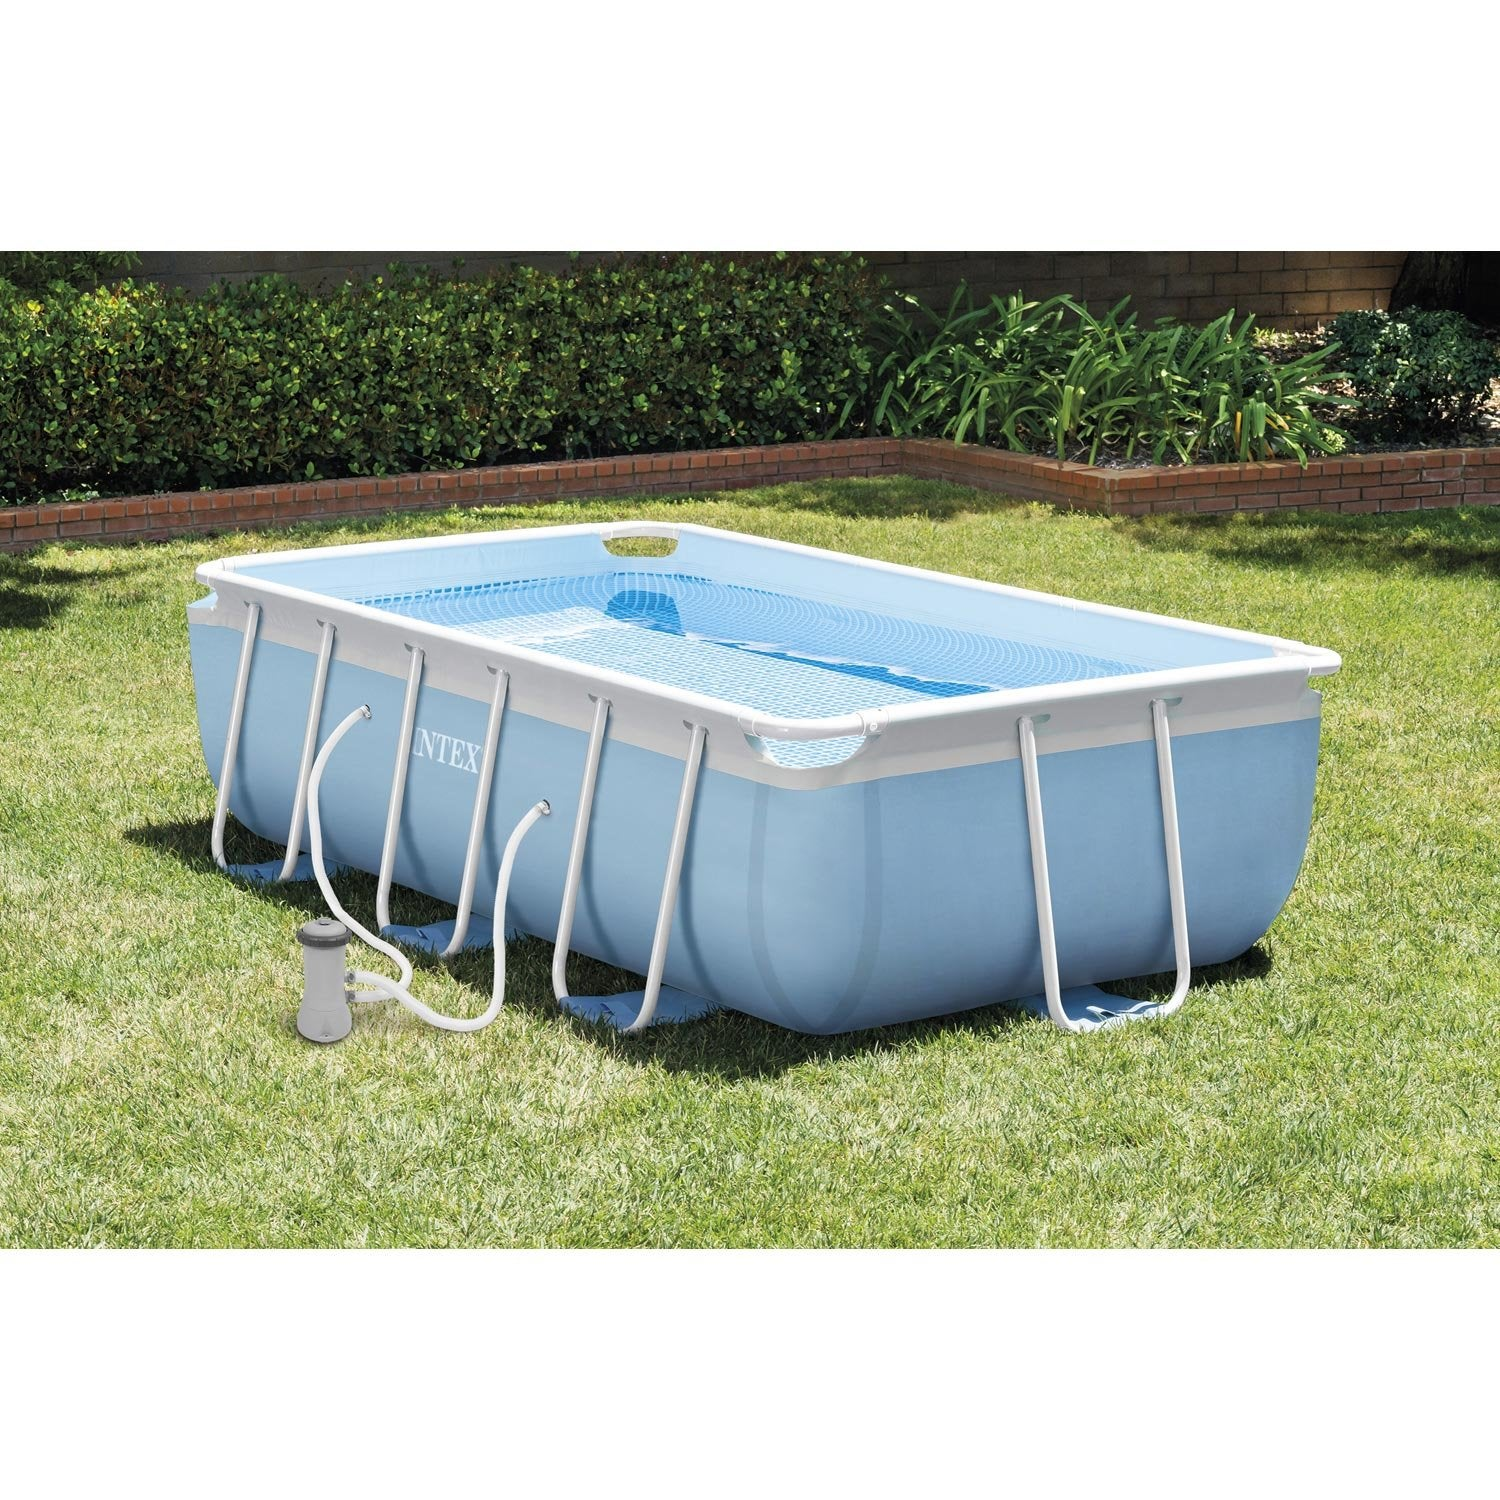 Piscine hors sol autoportante tubulaire intex l 3 4 x l 2 for Piscine hors sol intex prix